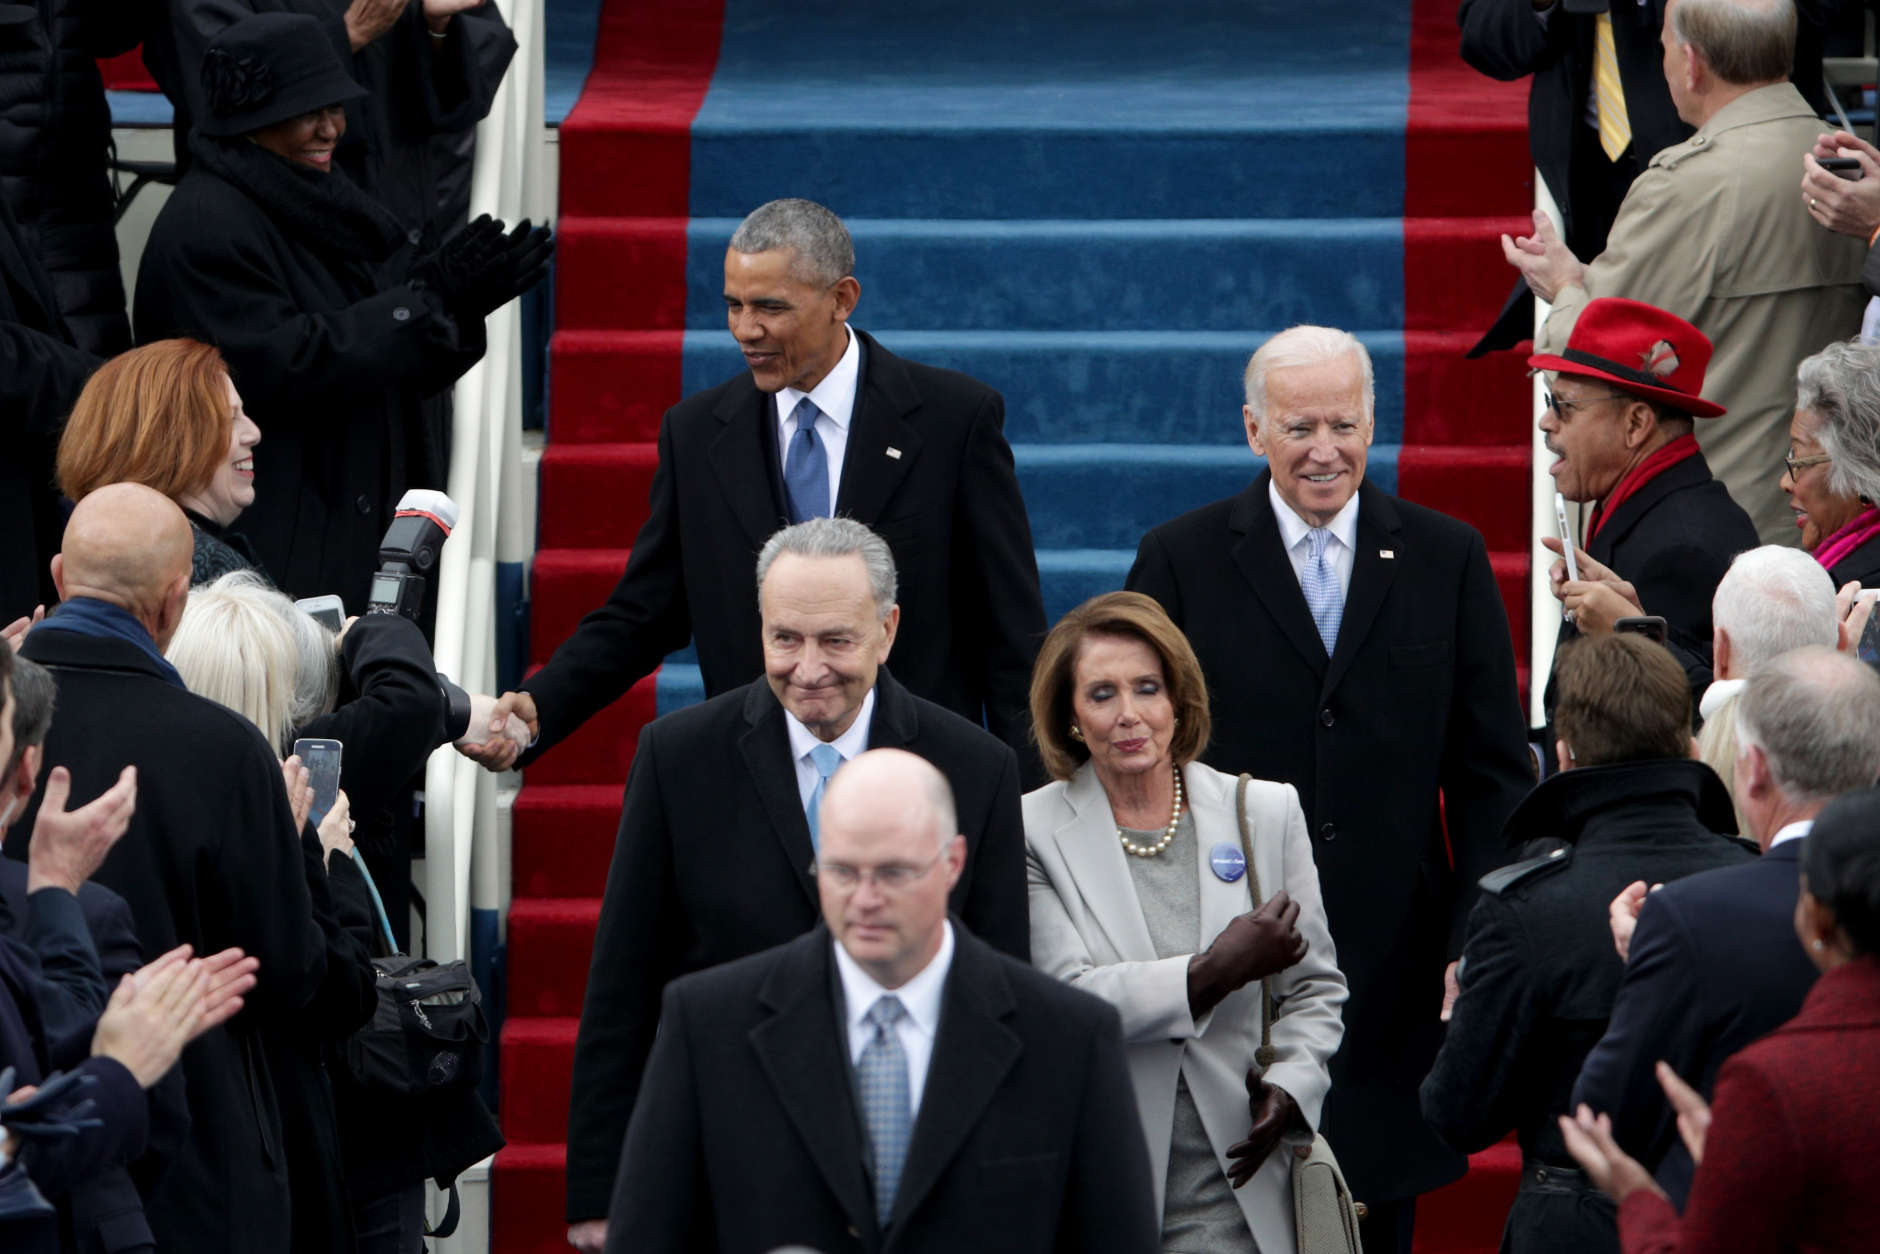 WASHINGTON, DC - JANUARY 20: President Barack Obama, Sen. Chuck Schumer (D-NY), Rep. Nancy Pelosi (D-CA) and Vice President Joe Biden arrivei  on the West Front of the U.S. Capitol on January 20, 2017 in Washington, DC. In today's inauguration ceremony Donald J. Trump becomes the 45th president of the United States.  (Photo by Alex Wong/Getty Images)